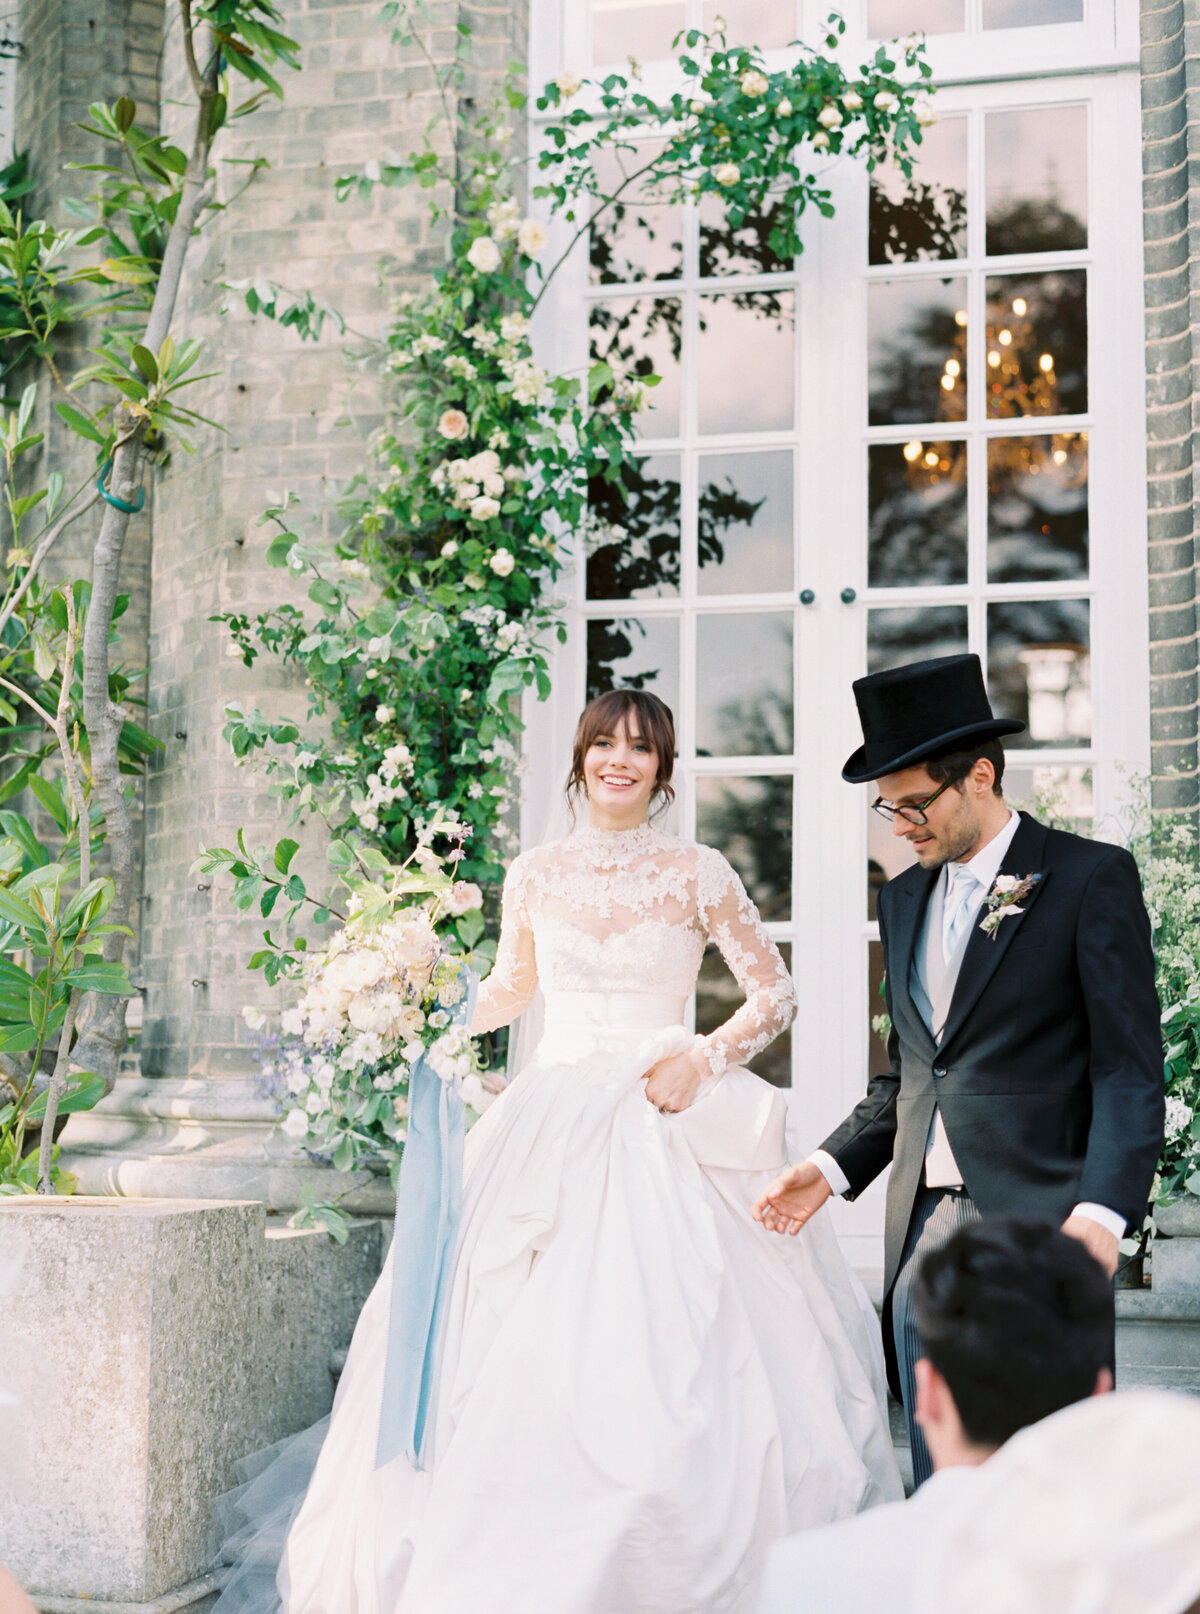 TiffaneyChildsPhotography-LondonWeddingPhotographer-Julieta+Cedrick-HedsorHouseWedding-235